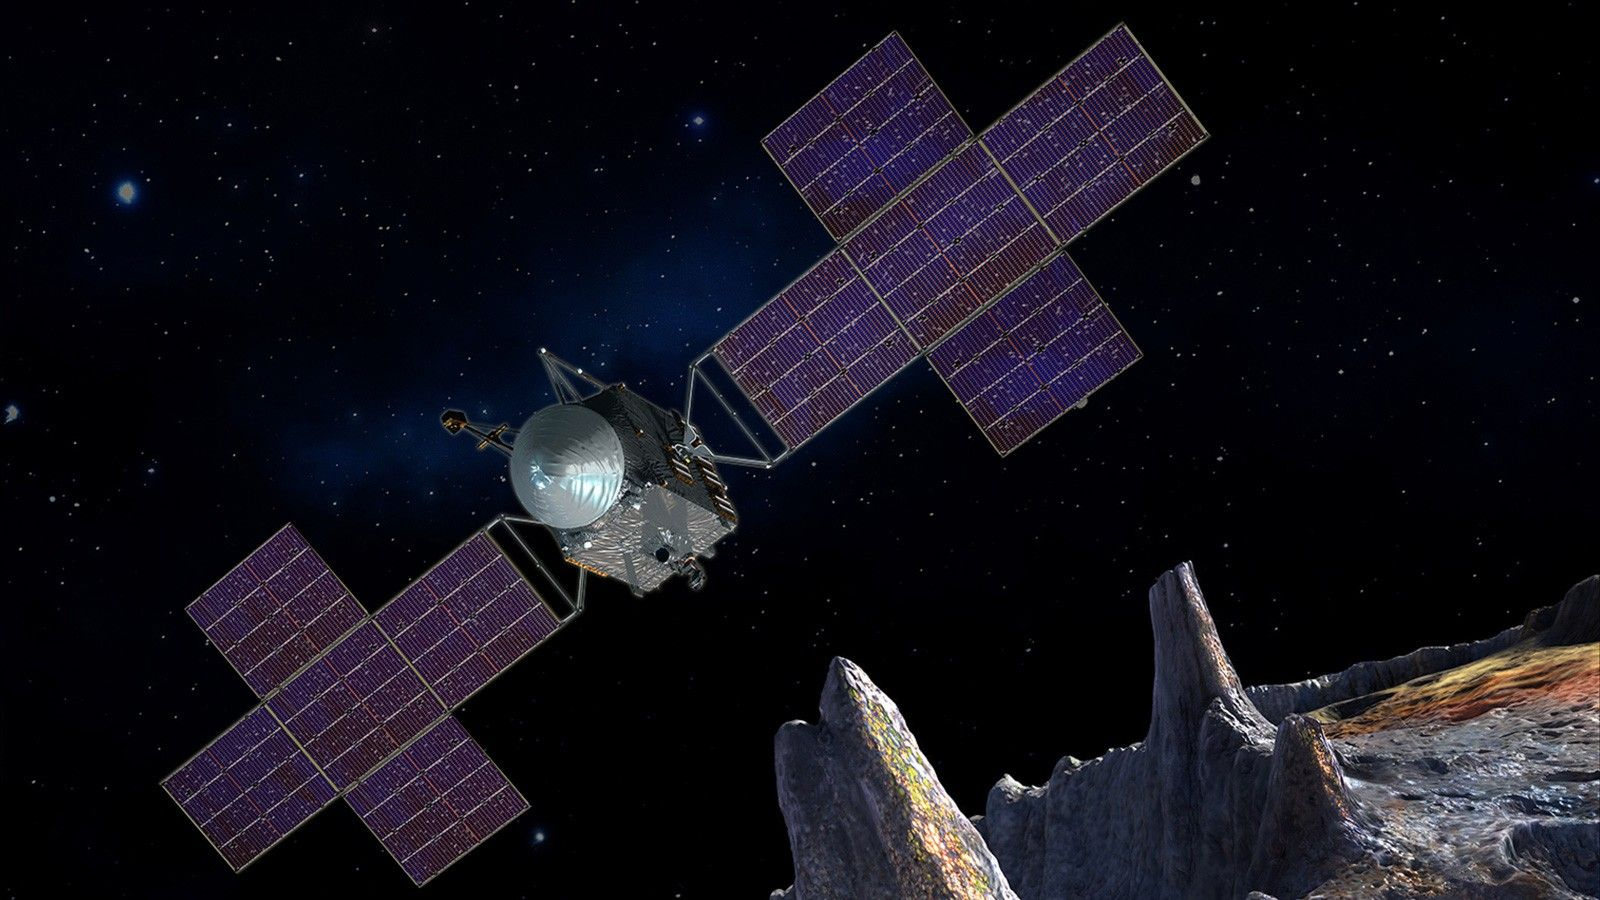 In 2026, NASA's Psyche mission will arrive at 16 Psyche, one of the solar system's most ...